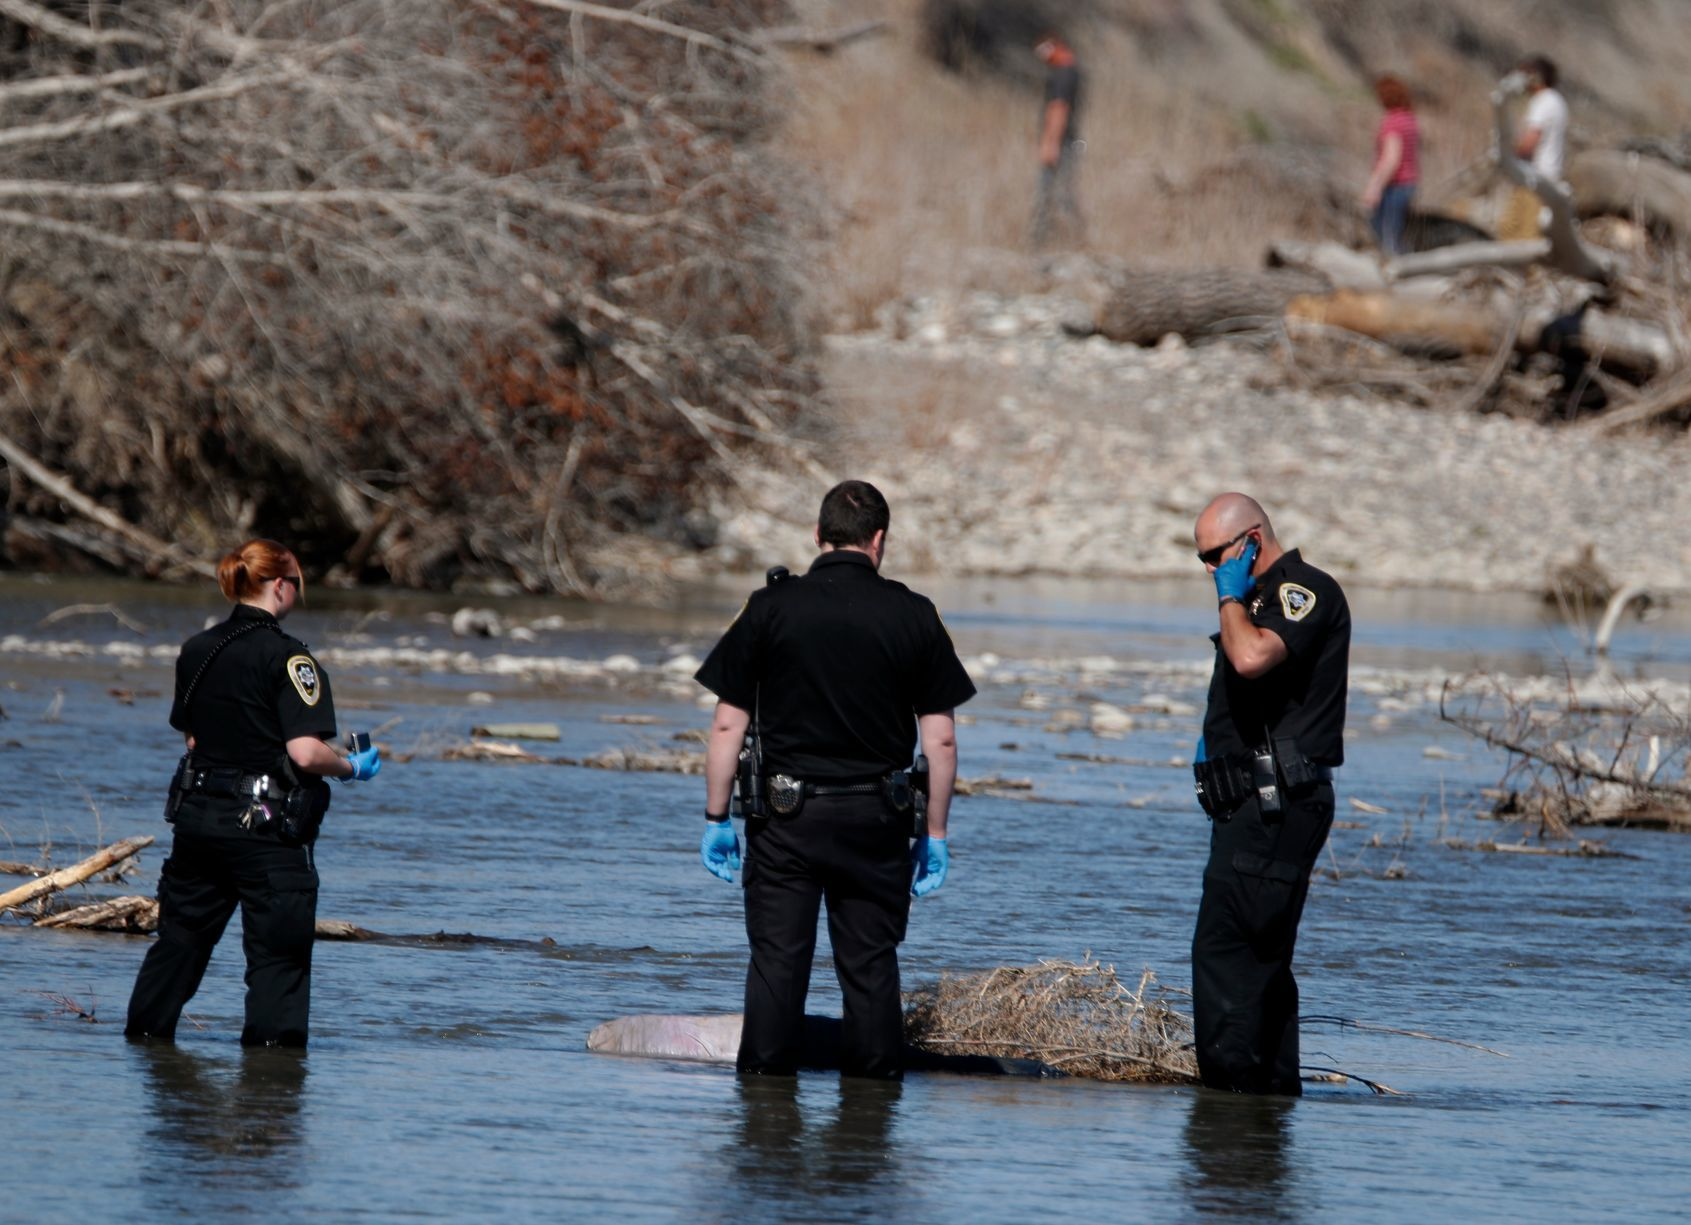 Sheriff's Office IDs body found in Yellowstone River; woman's name withheld pending family notifications | Billings Gazette